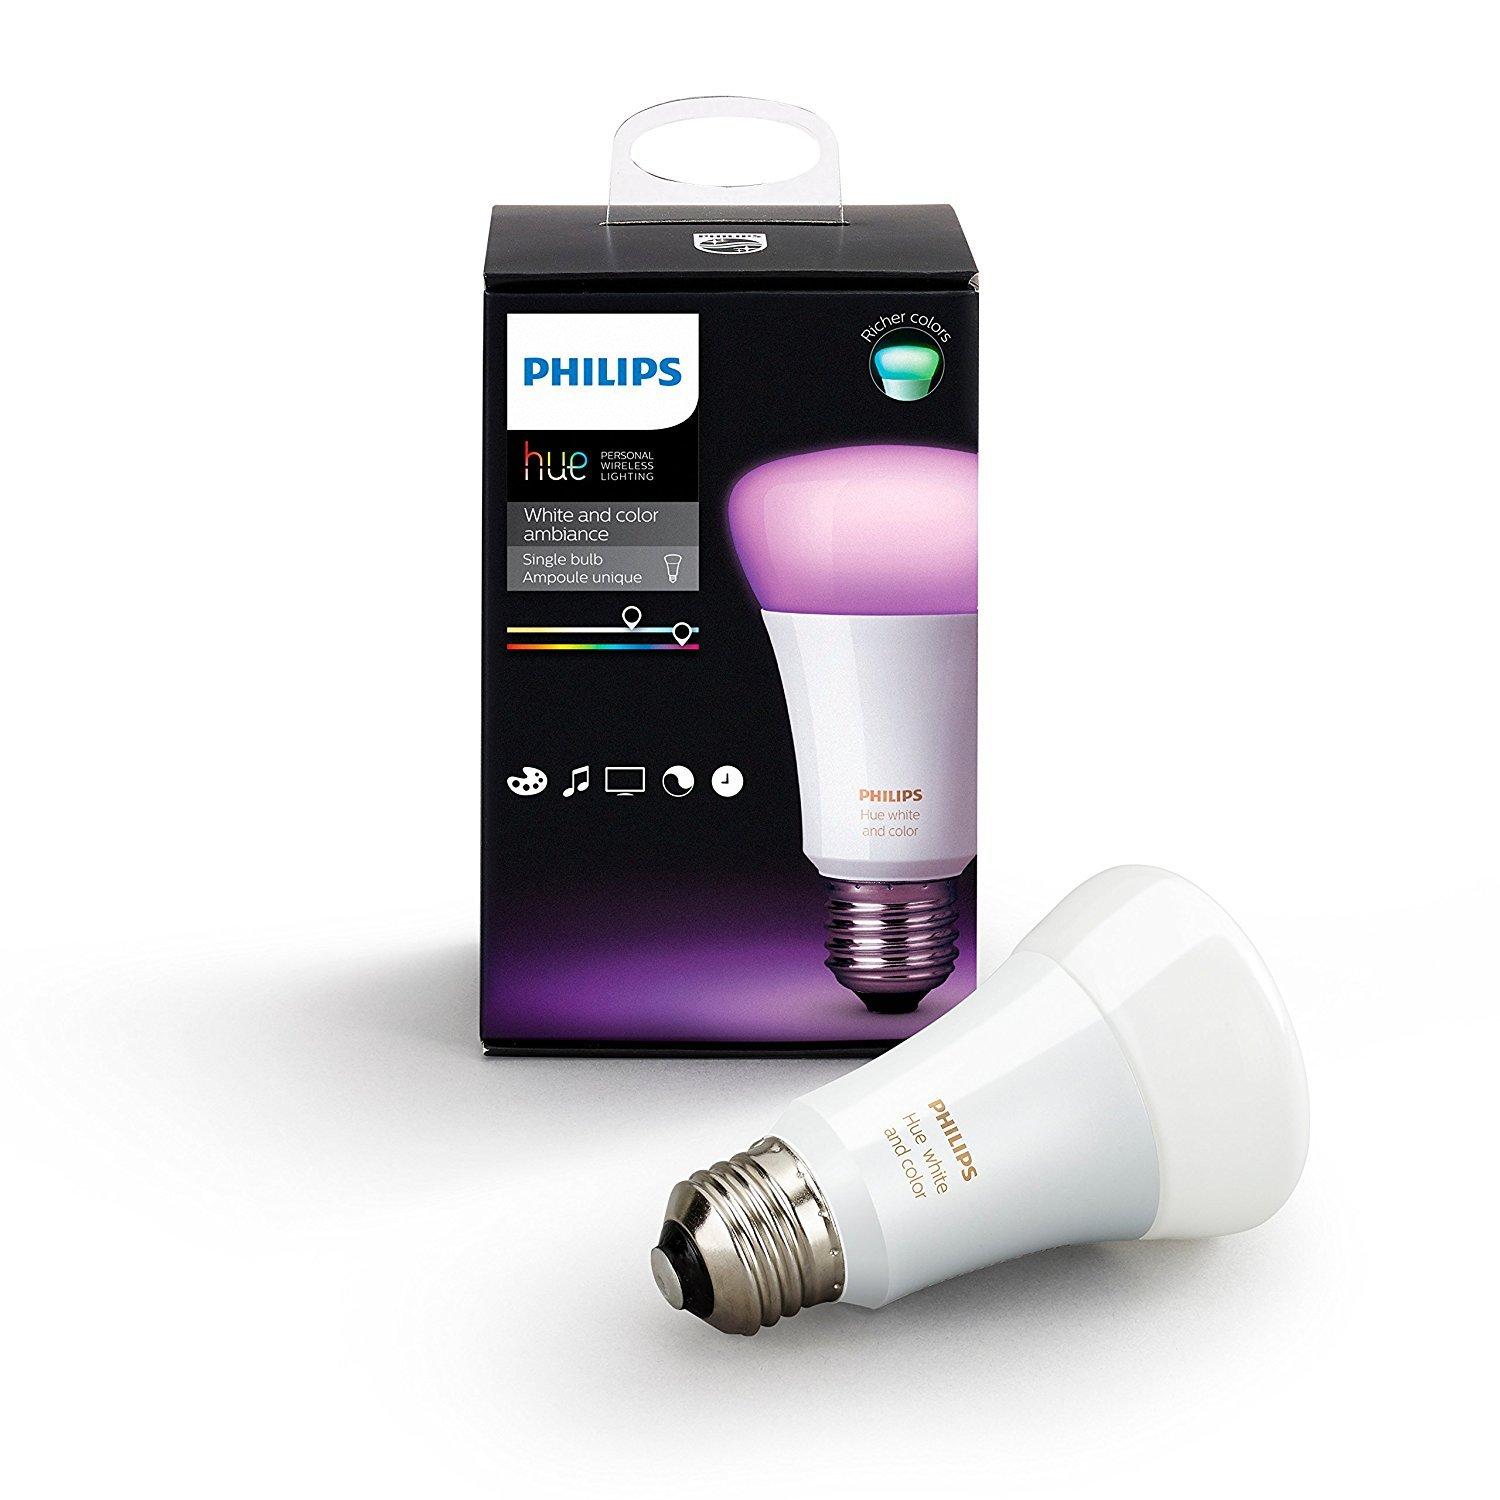 Philips Hue White and Color Ambiance A19 60W Equivalent Dimmable LED Smart Bulb (1 Bulb Compatible with Amazon Alexa Apple HomeKit and Google Assistant)